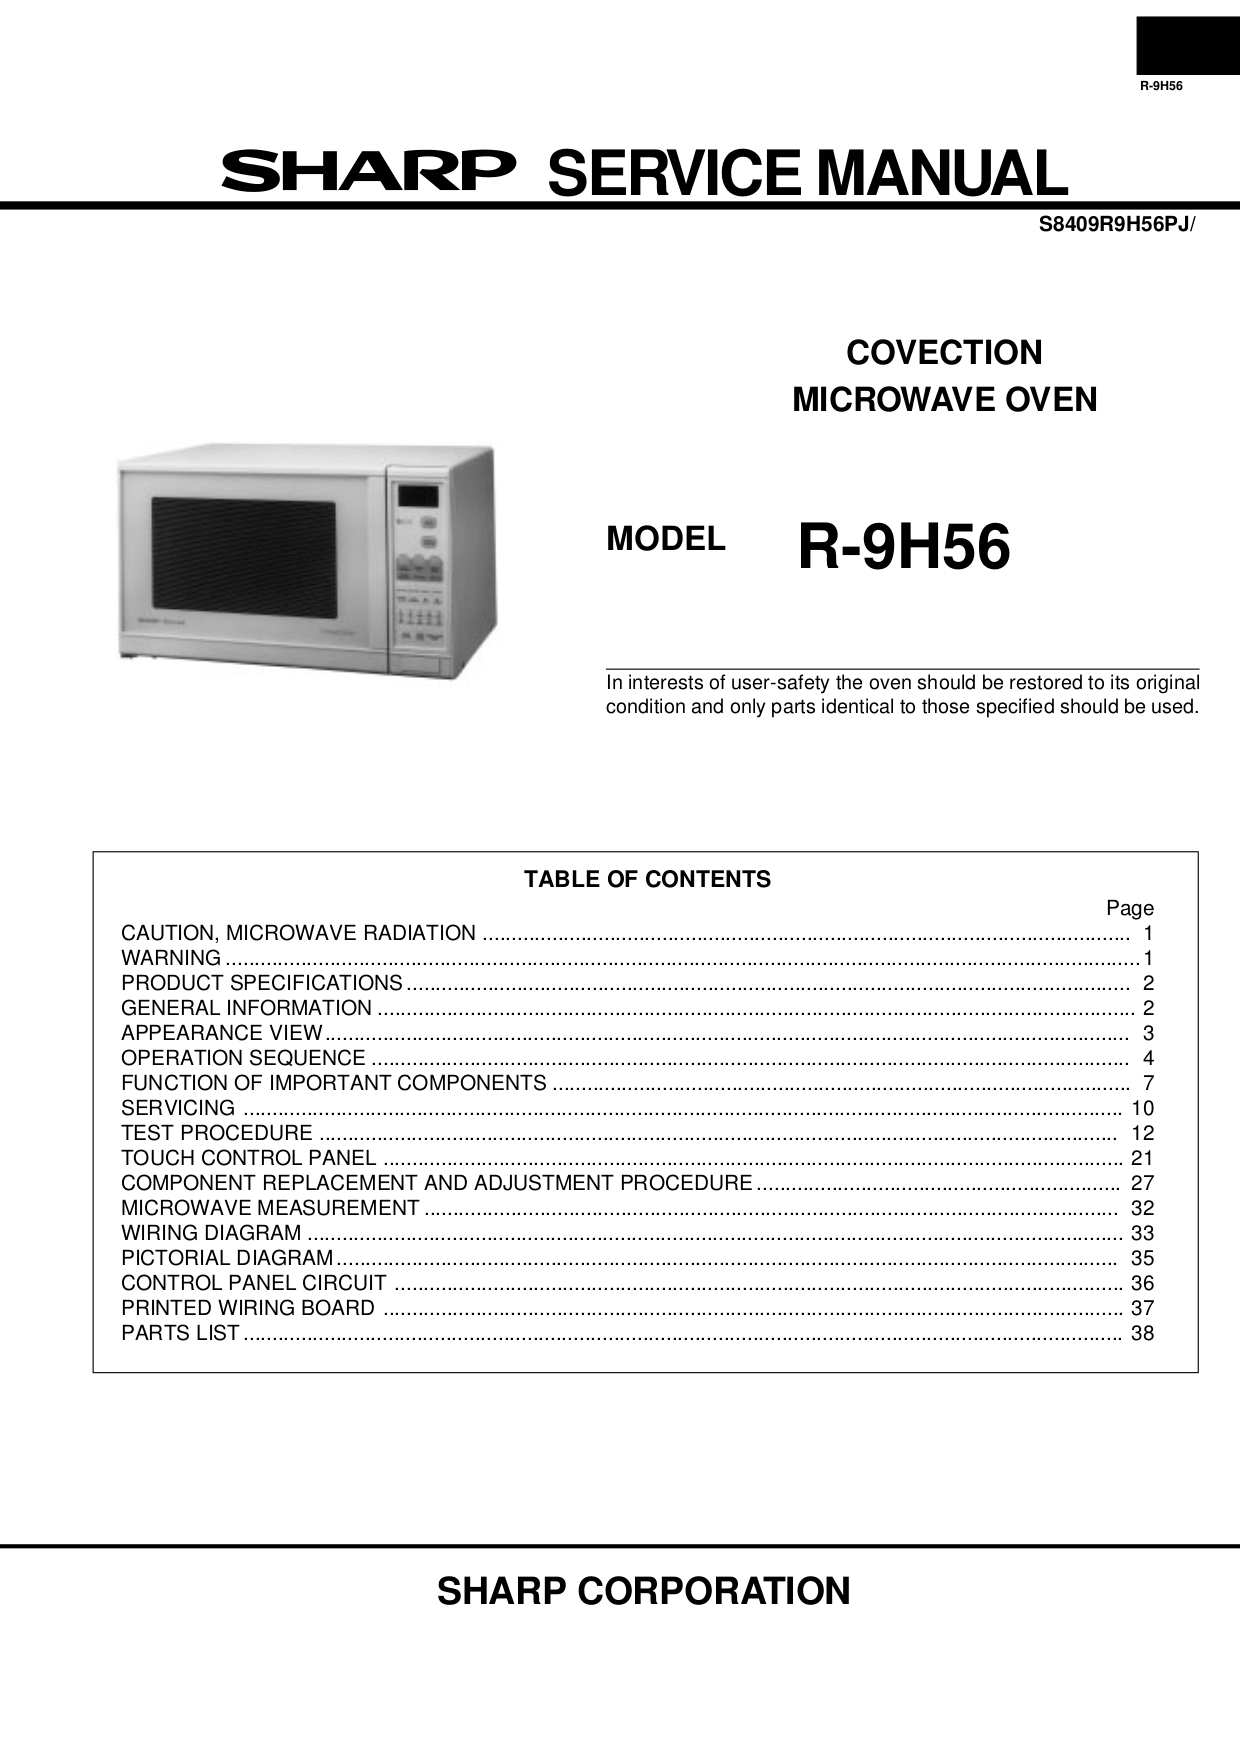 Download Free Pdf For Sharp R 1500 Microwave Manual Drawer Diagram And Parts List Microwaveparts